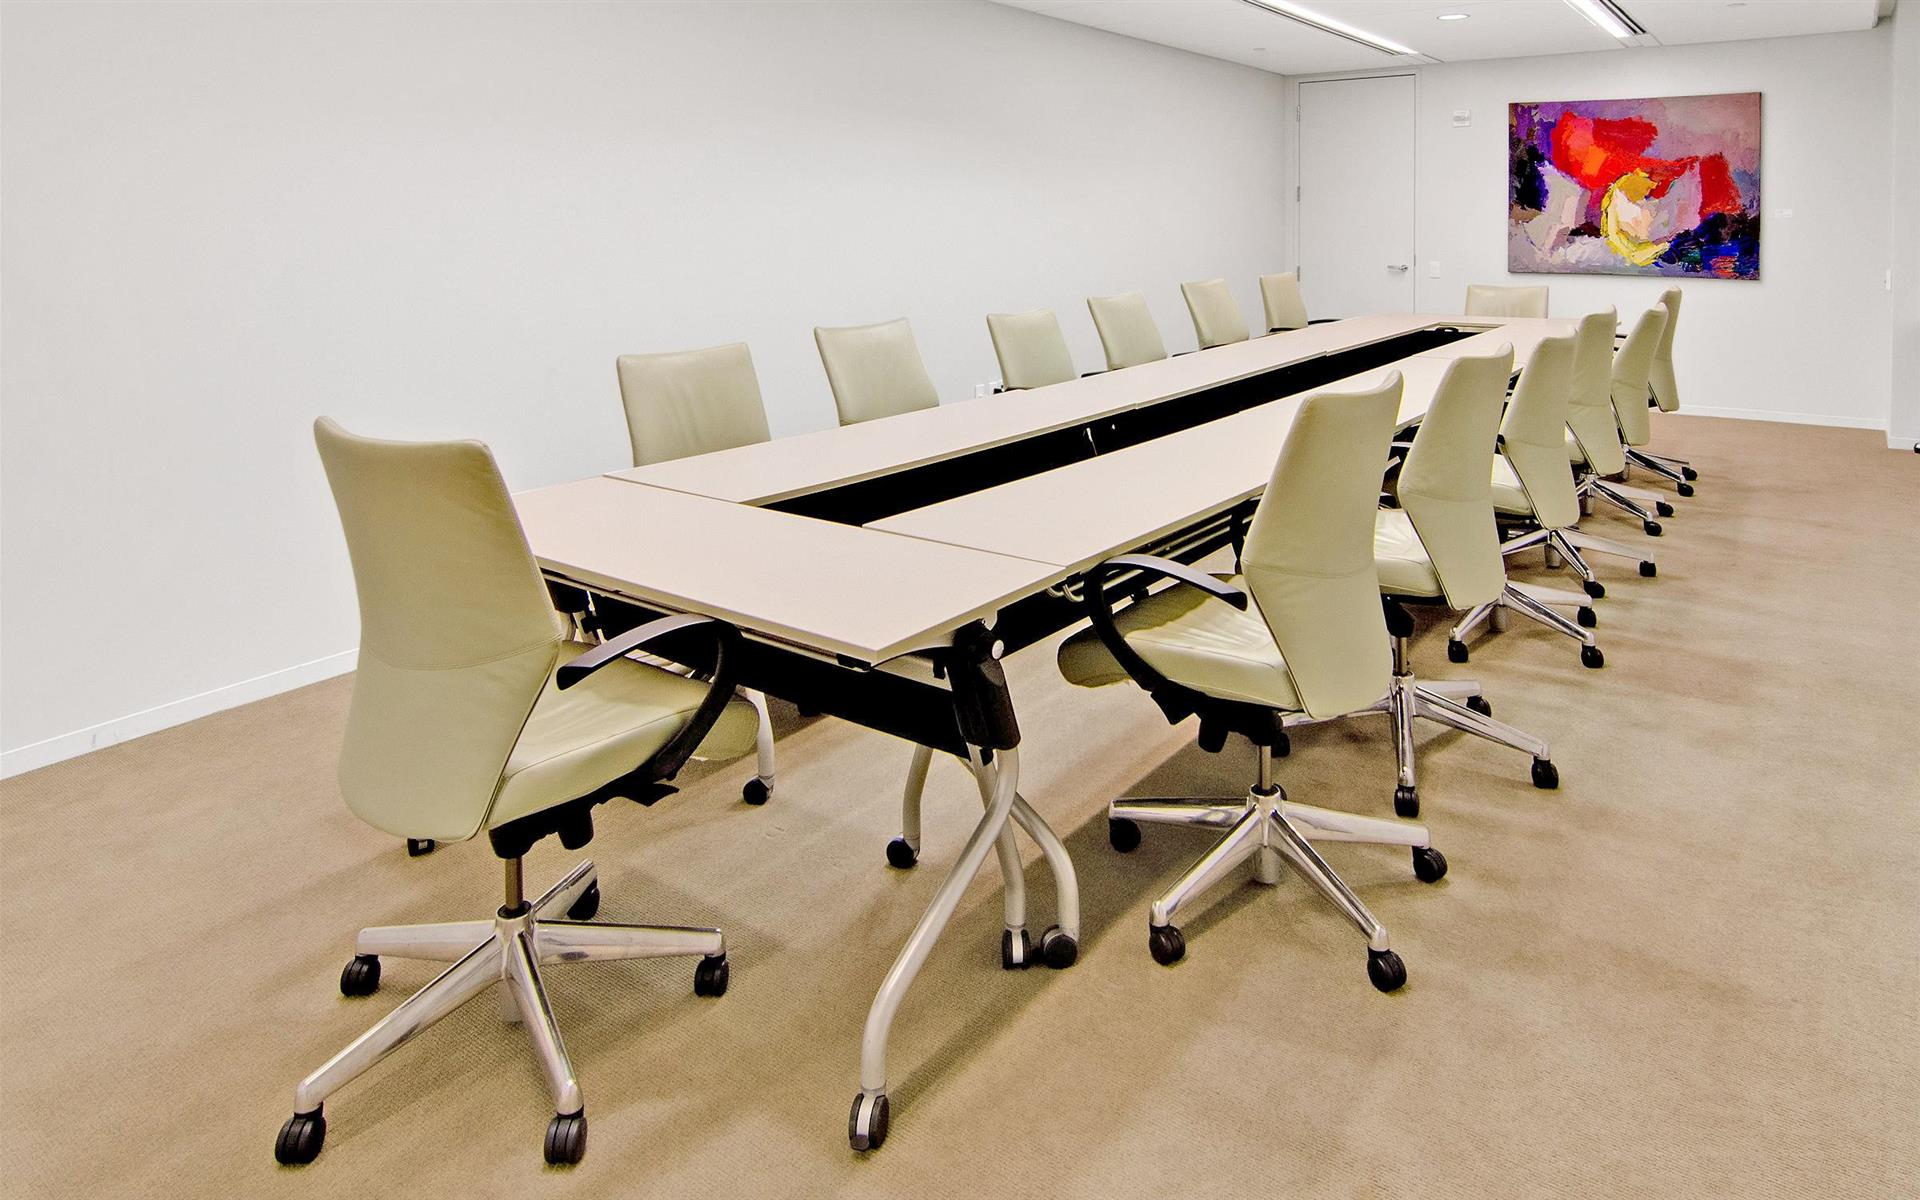 AdvantEdge BC - Downtown Center - Conference Room #3, Suite 800